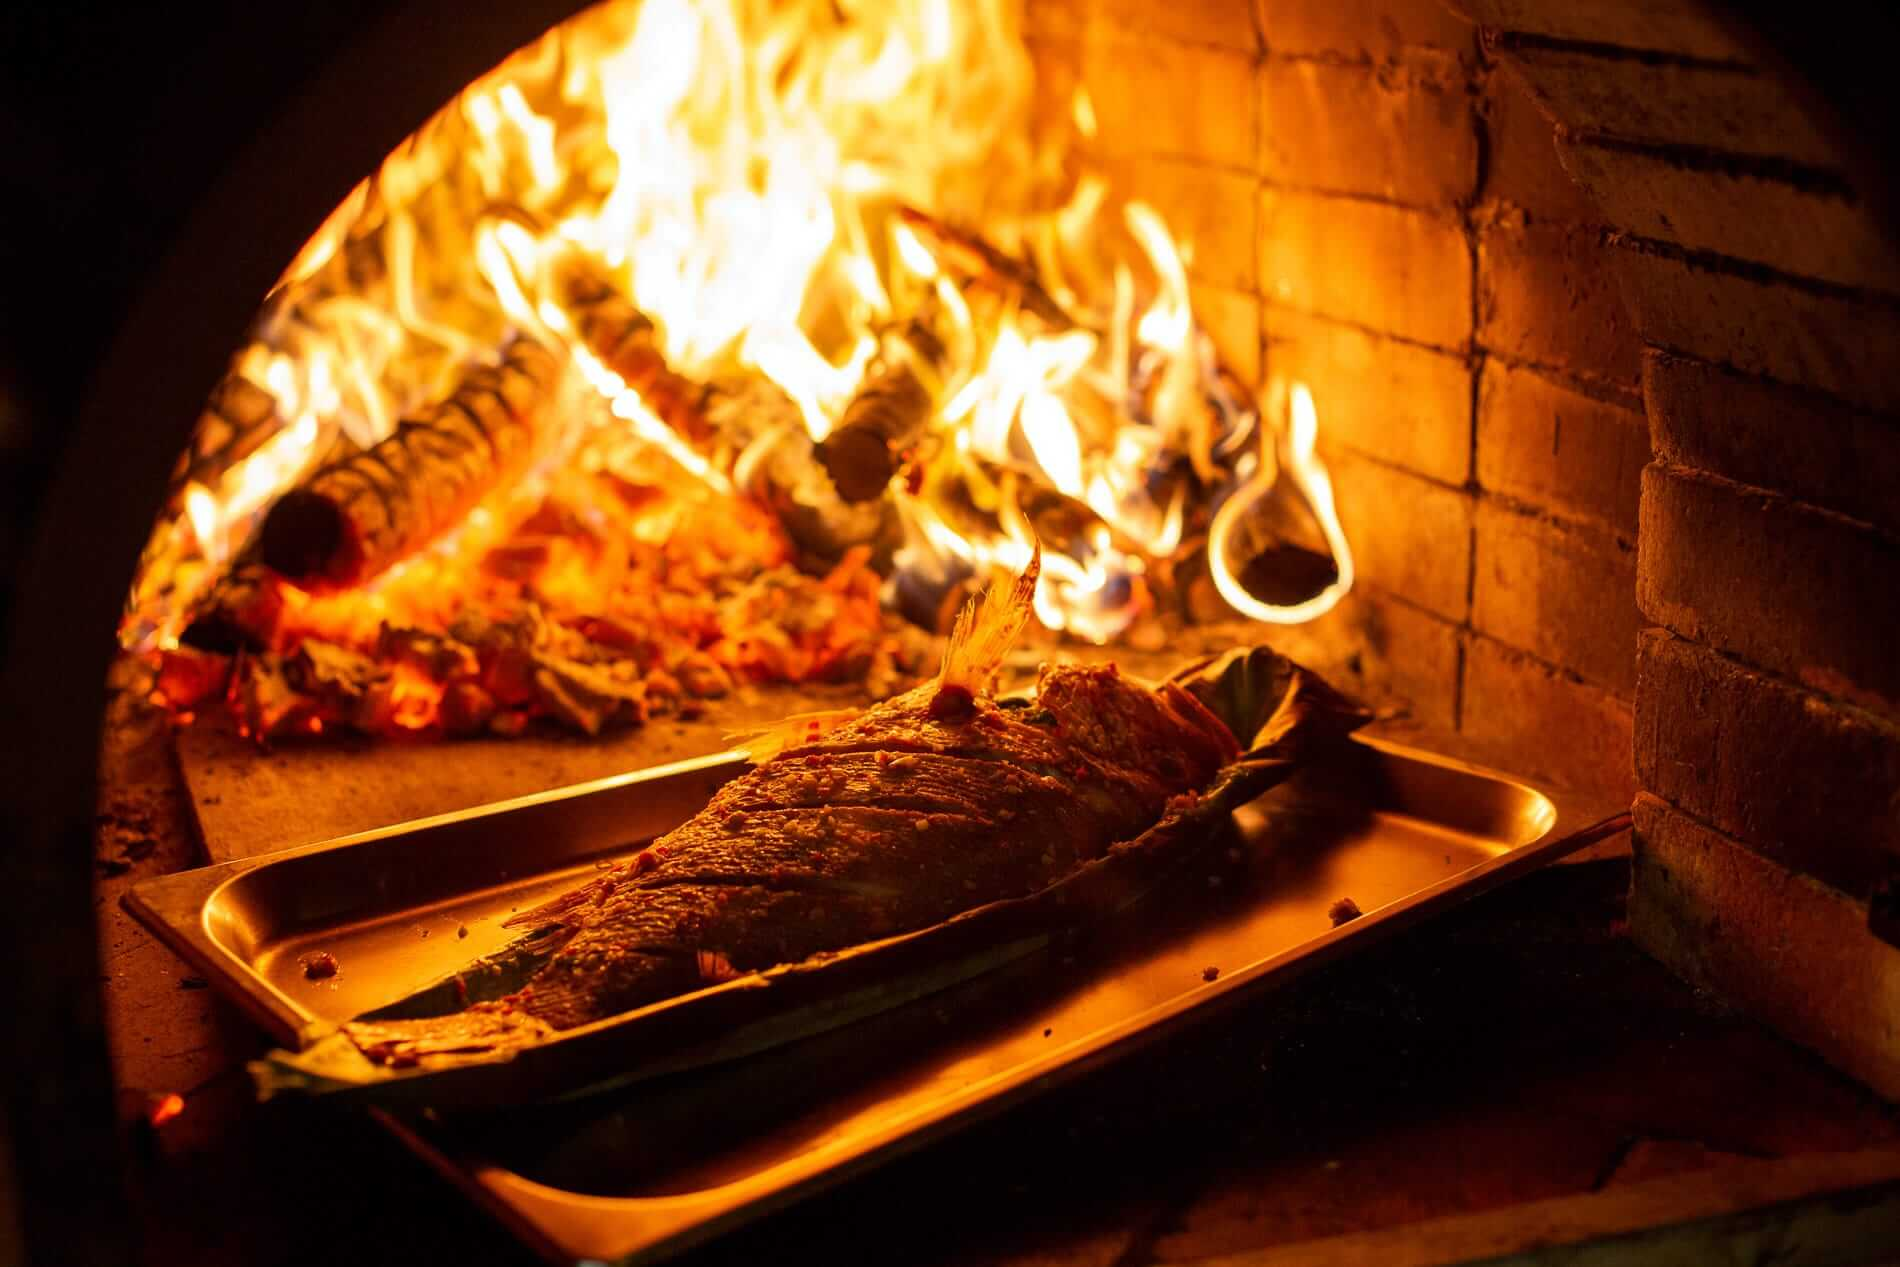 Woodfired cooking